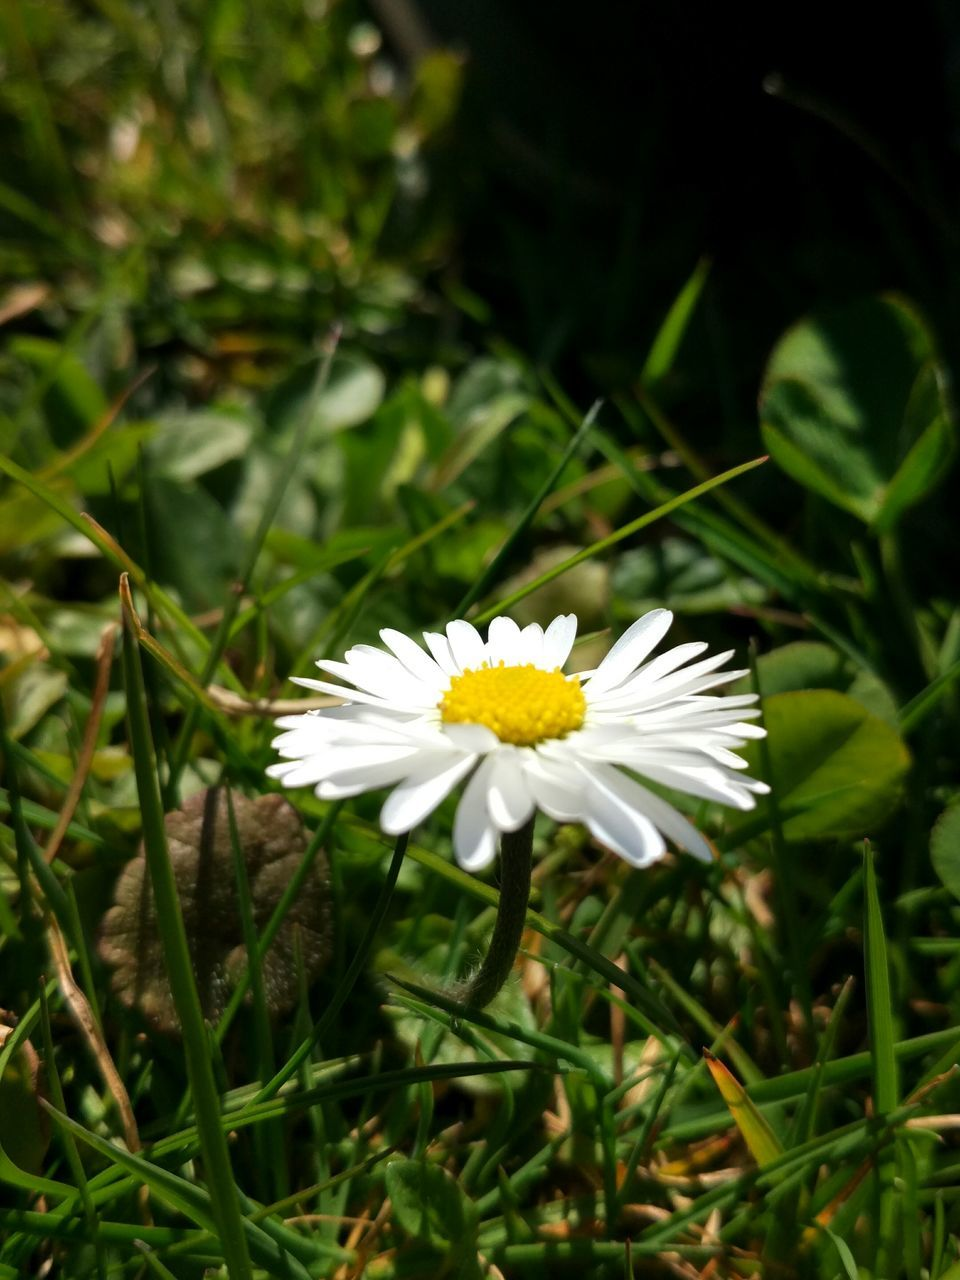 flower, petal, white color, nature, growth, beauty in nature, flower head, fragility, freshness, blooming, high angle view, plant, close-up, day, green color, outdoors, no people, leaf